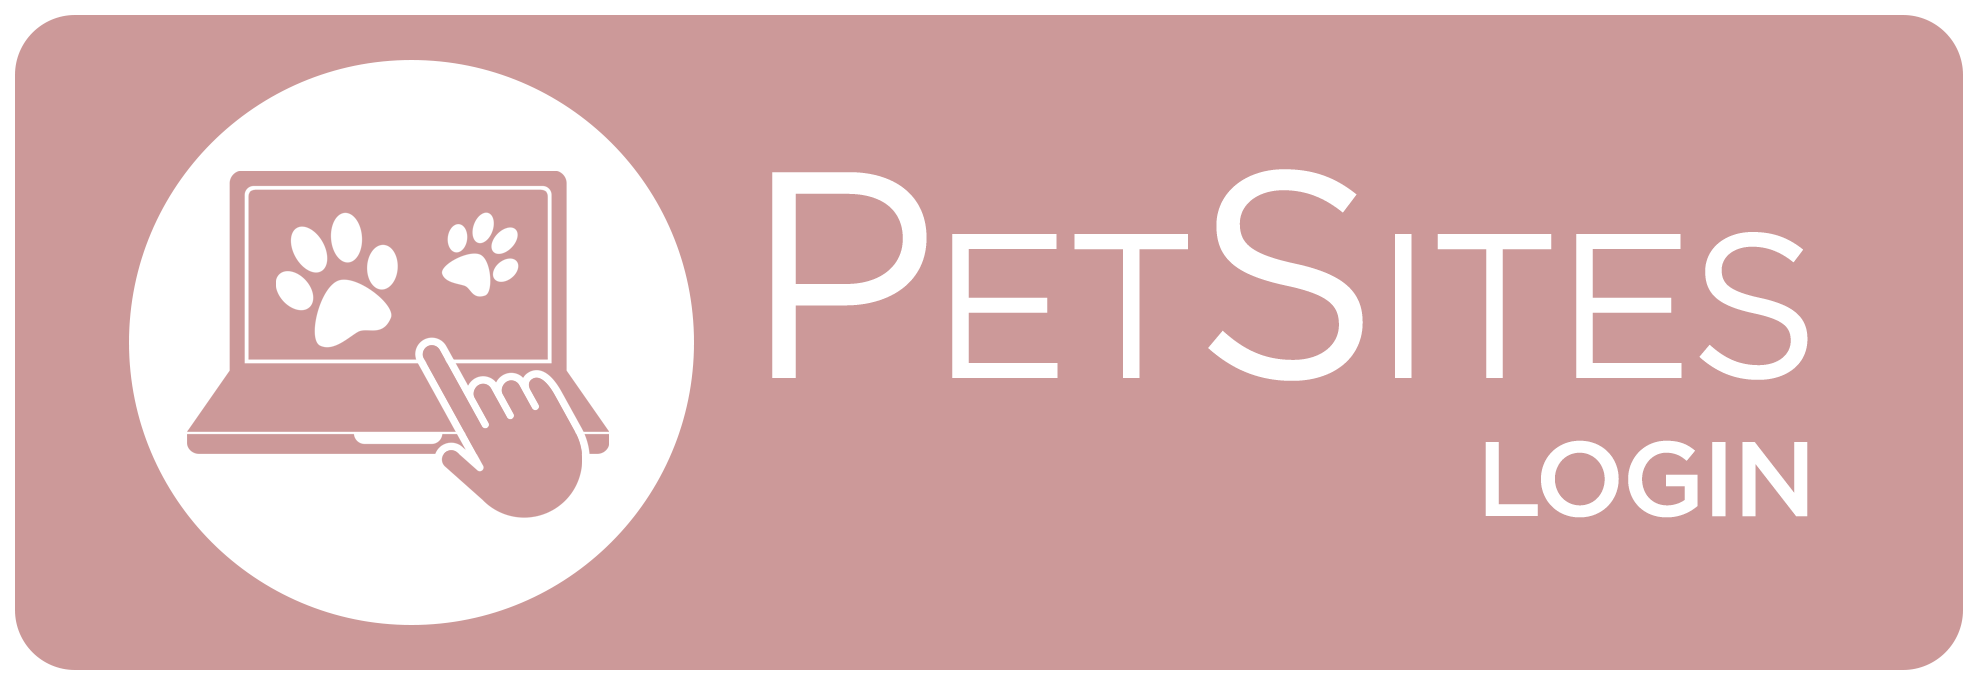 Dogwood Vet Pet Sites Button